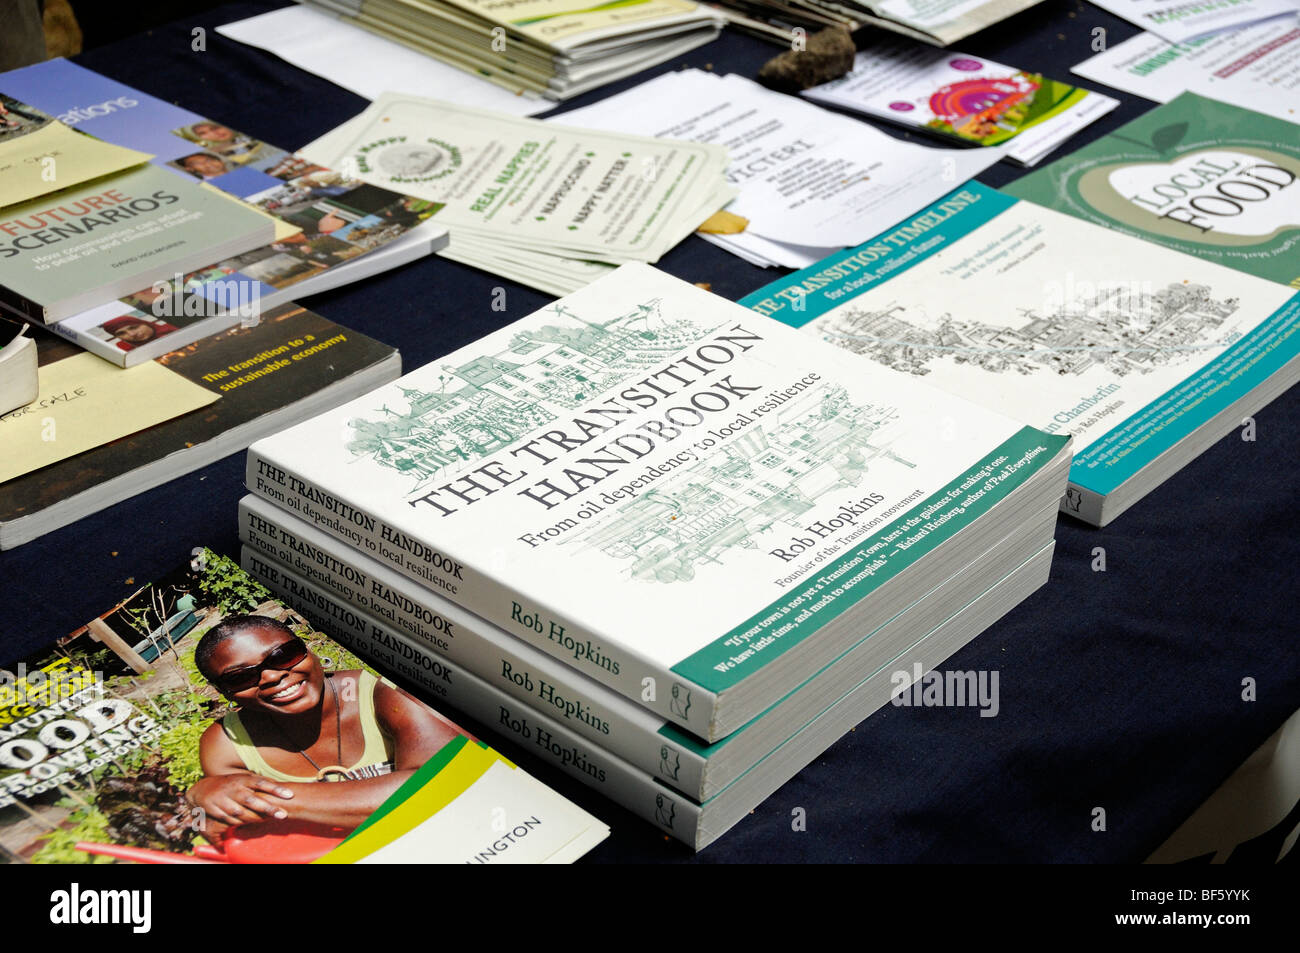 The Transition Handbook, environmental books on sale on stall - Stock Image